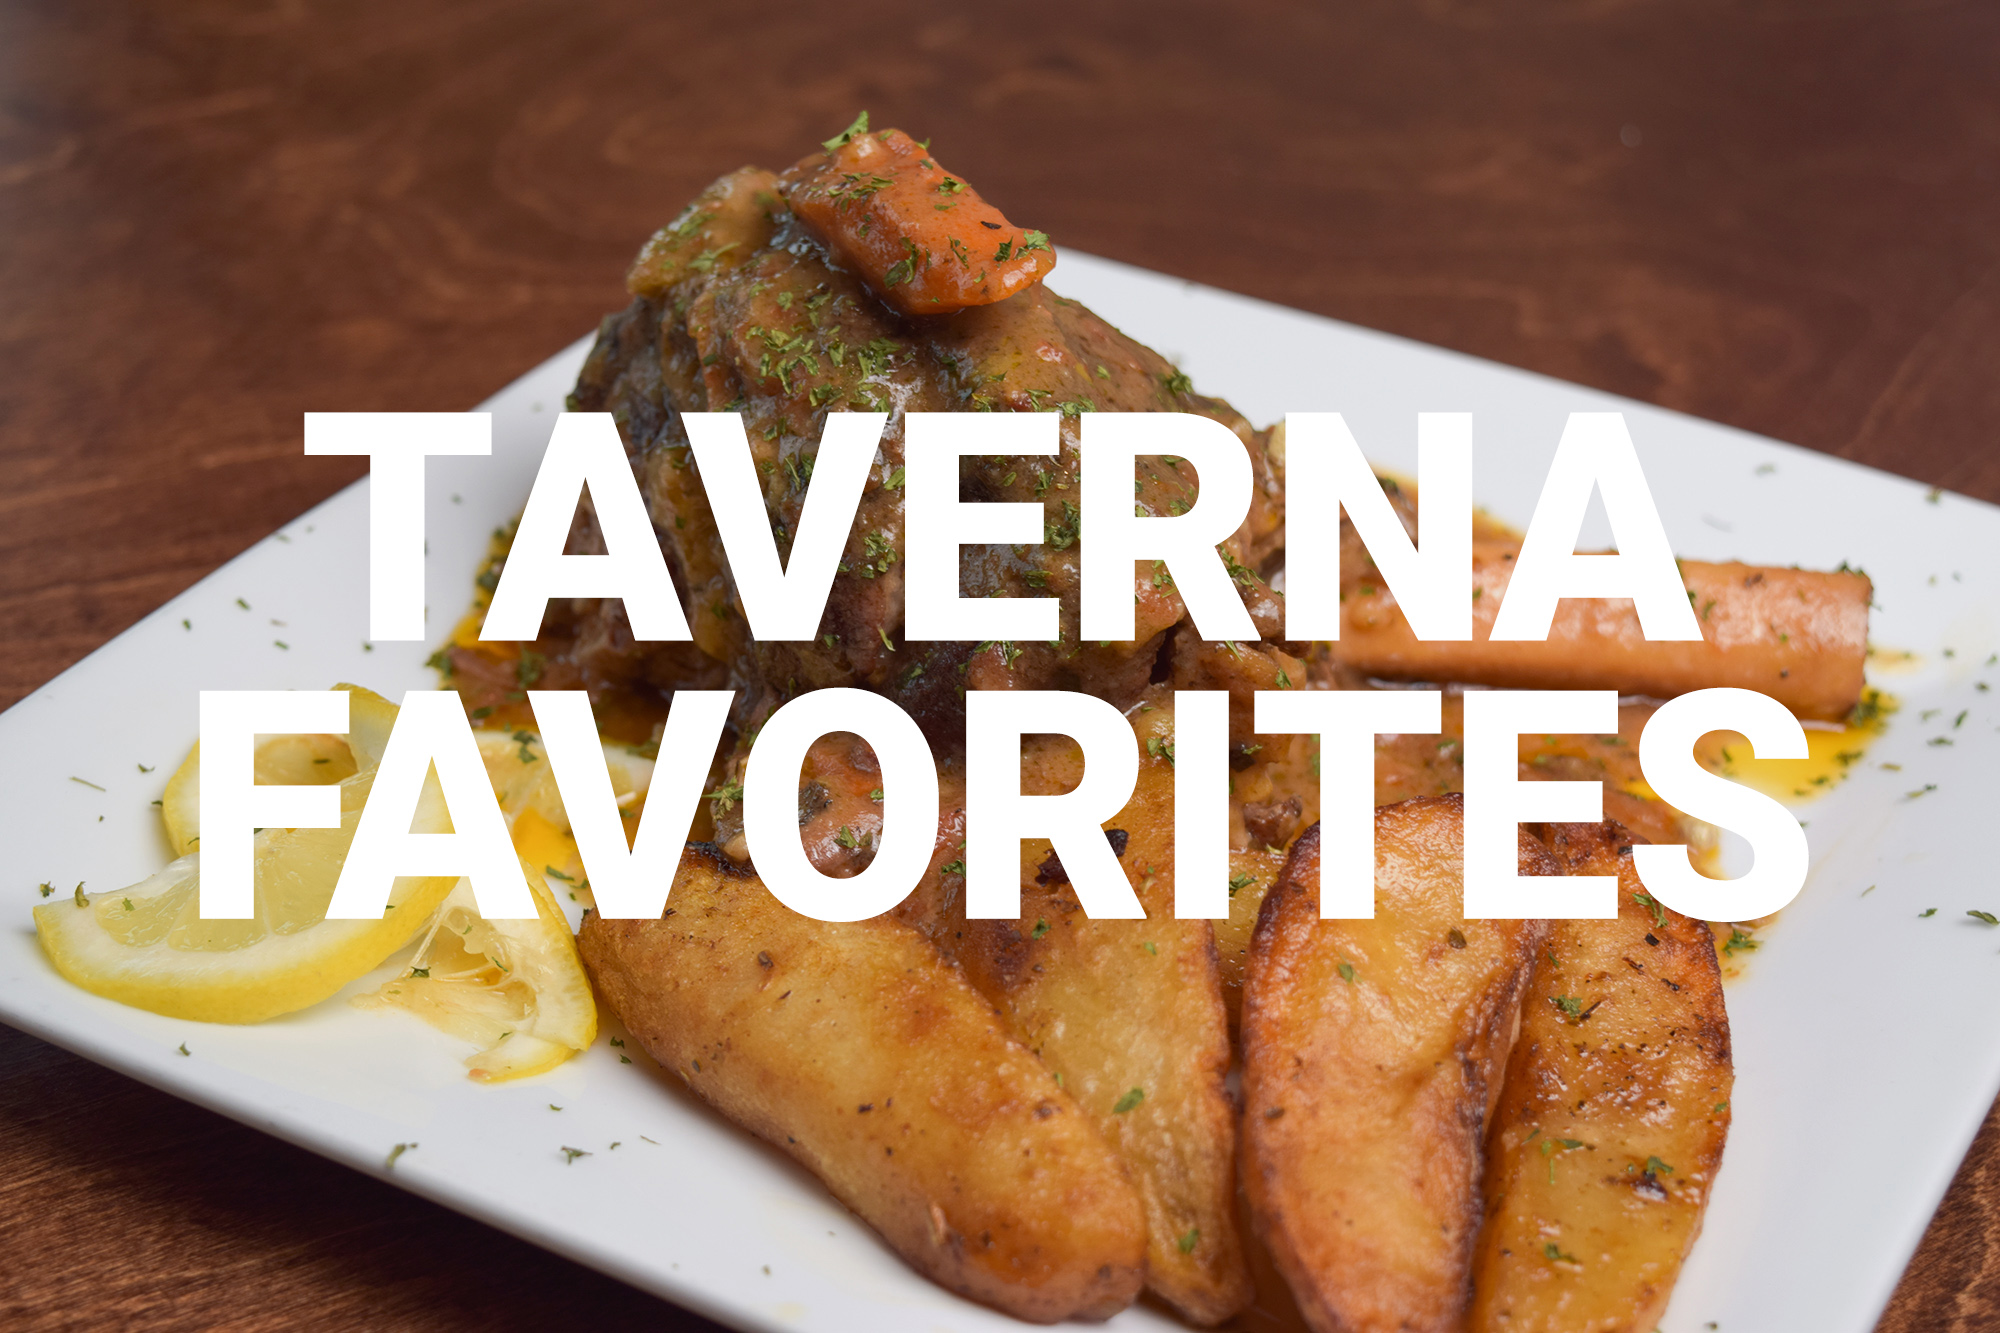 Spiro's Taverna Taverna Favorites